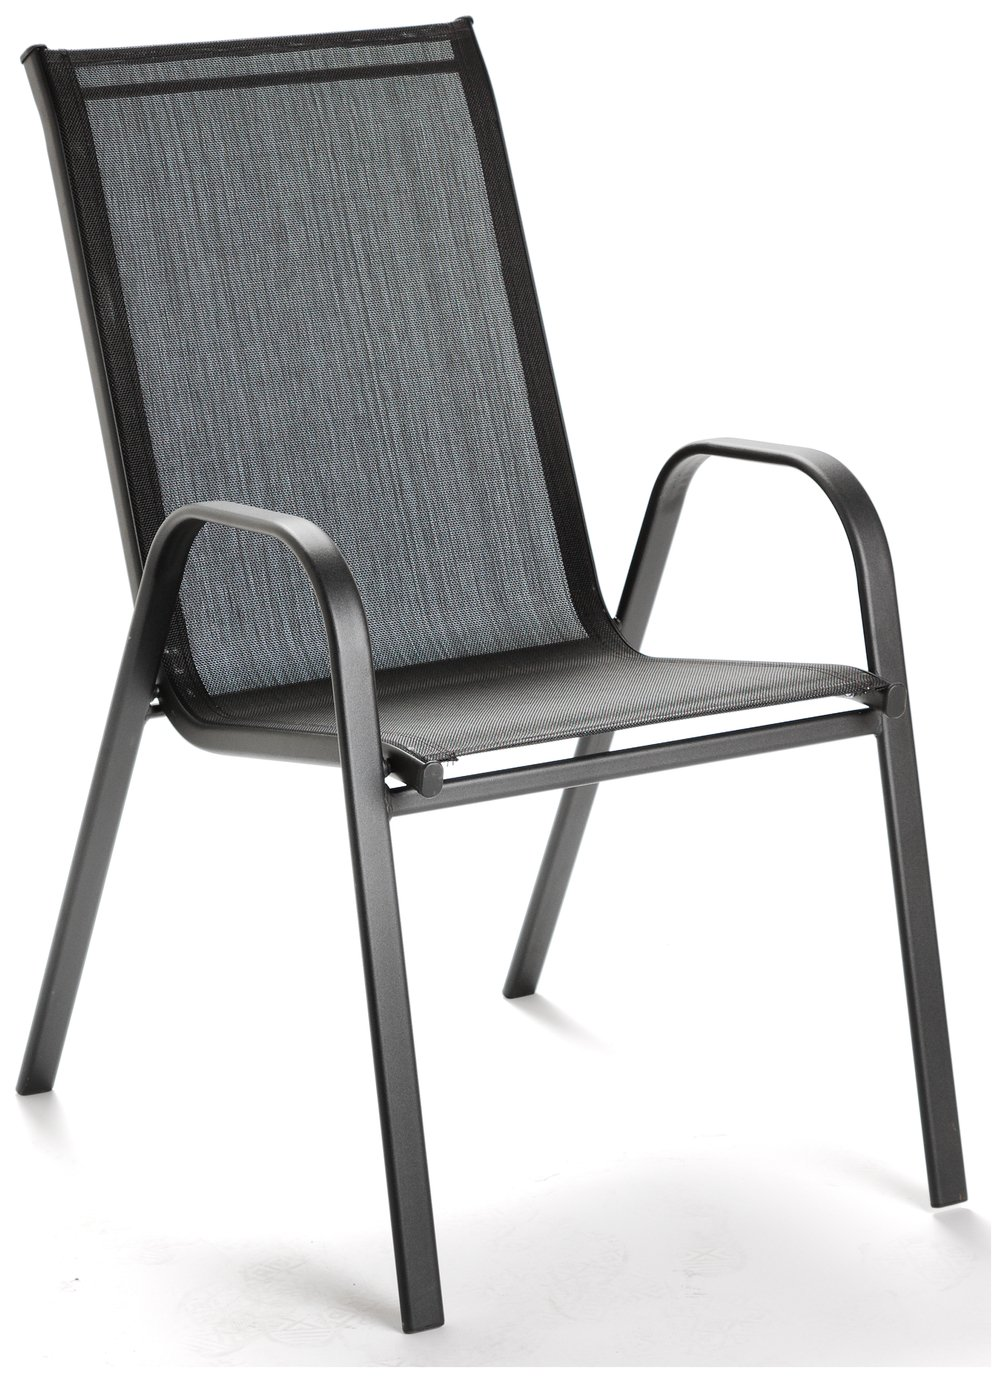 HOME Sicily Garden Chairs - Pack of 2  sc 1 st  Argos & Buy HOME Sicily Garden Chairs - Pack of 2 at Argos.co.uk - Your ... islam-shia.org